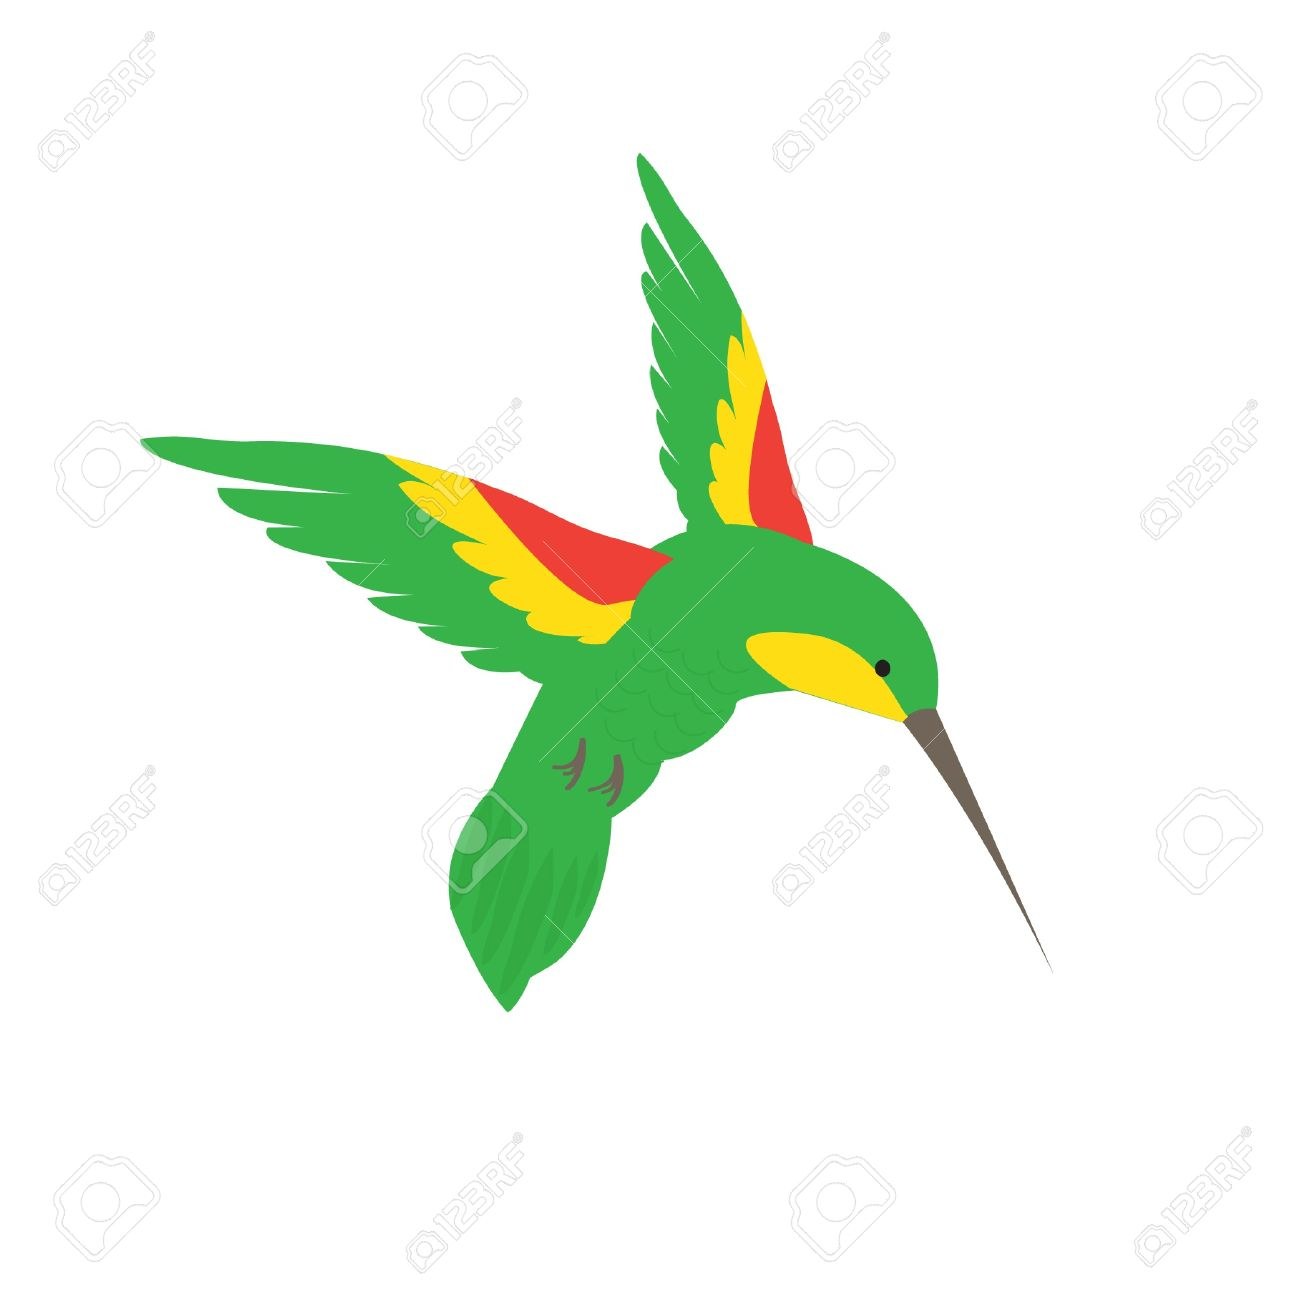 Green-throated Bird Of Paradise clipart #1, Download drawings